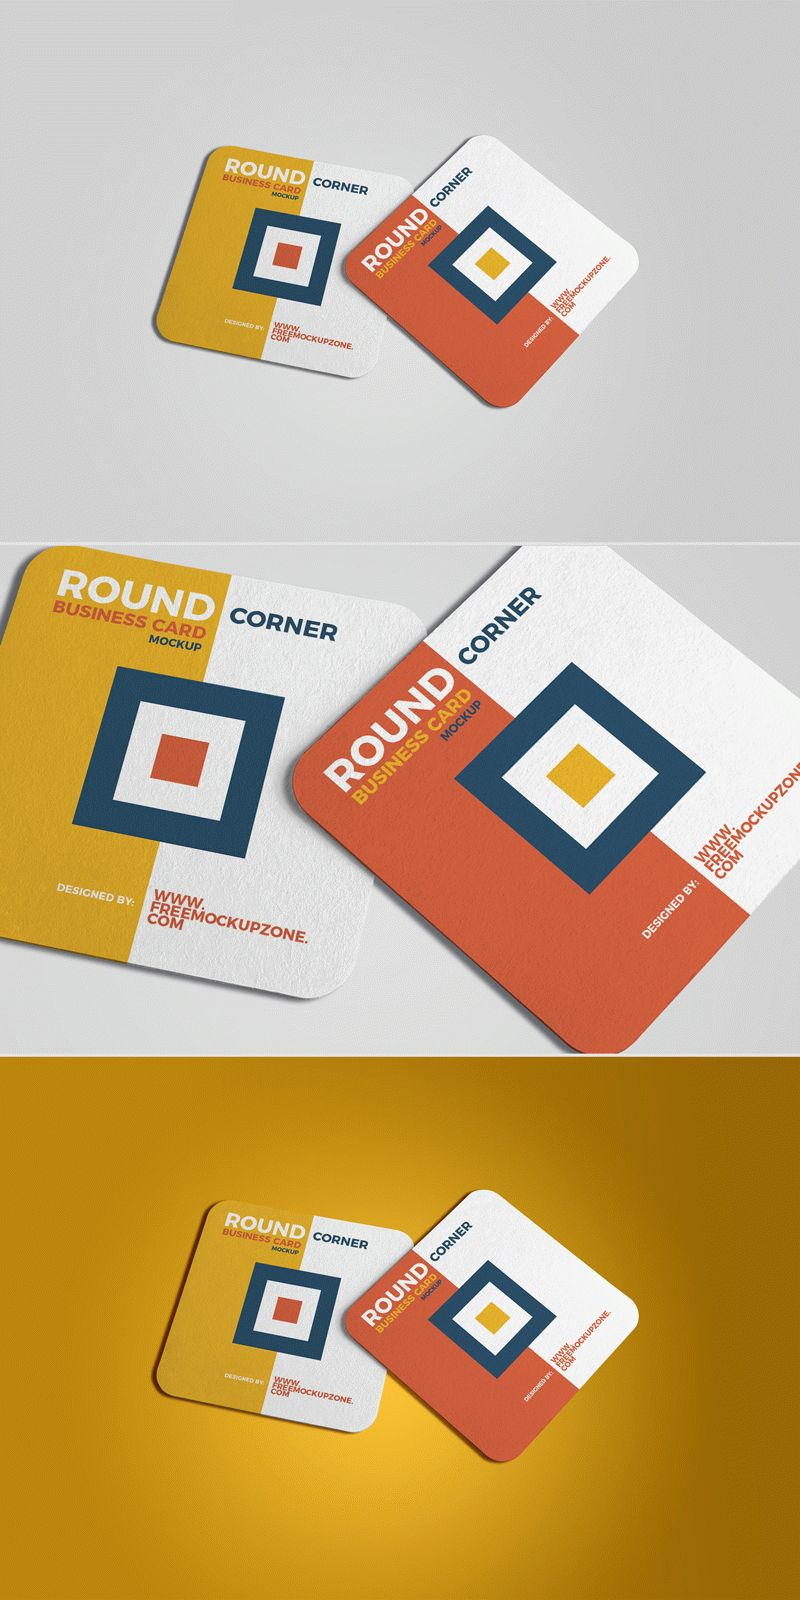 Free square round corner business card mockup 2018 download thanks to free mockup zone for this awesome mockup showcase your square business card reheart Gallery